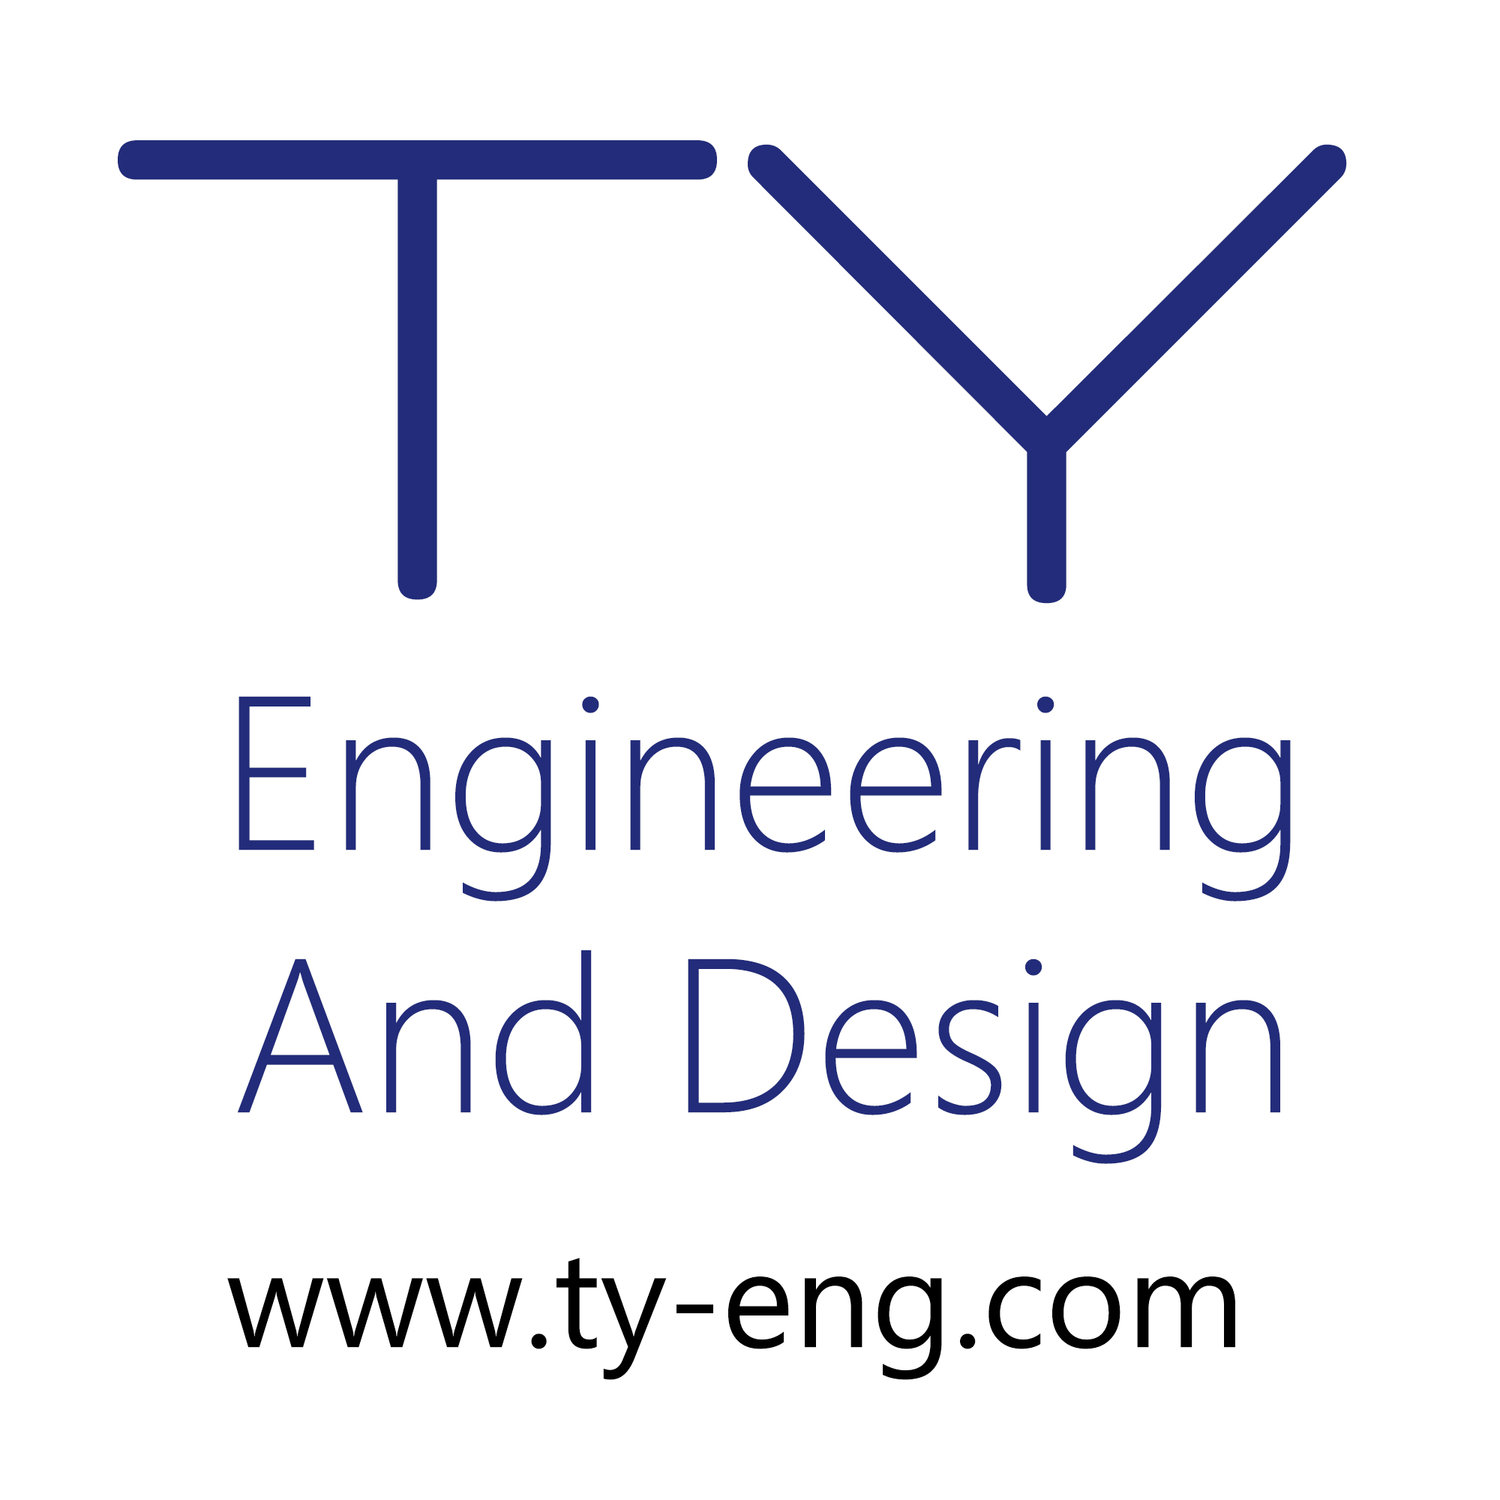 TY Engineering And Design